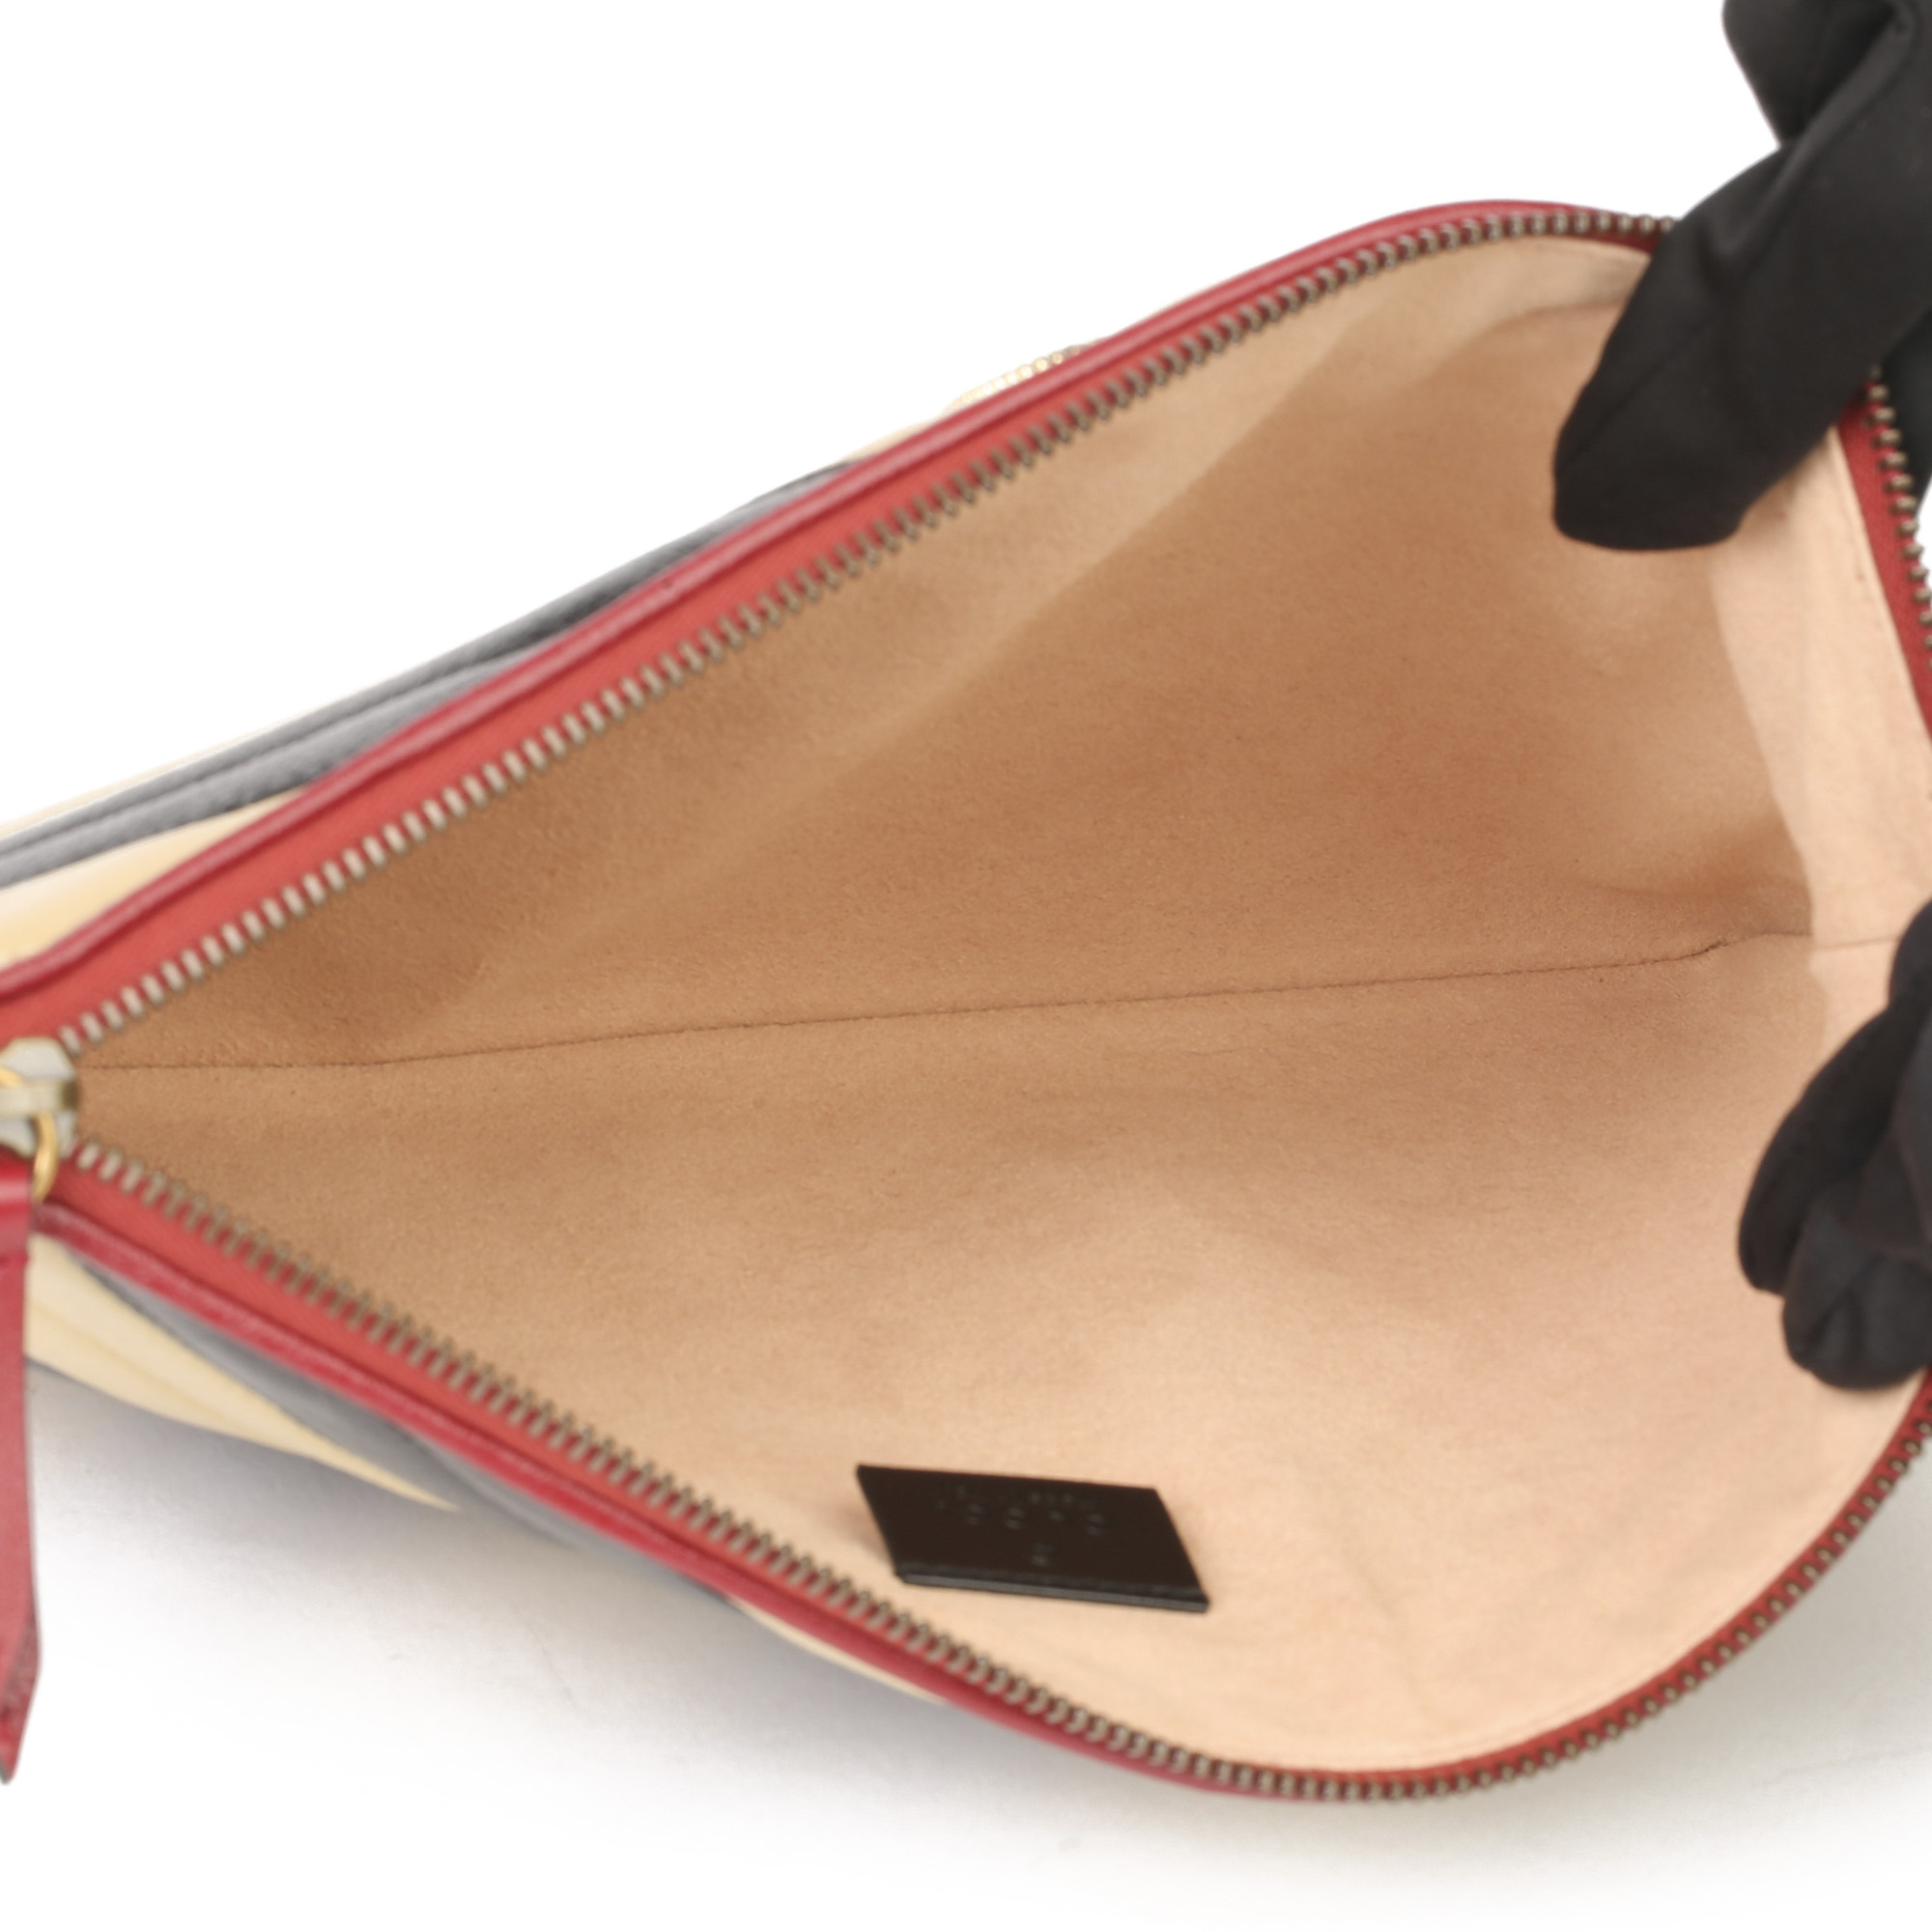 Gucci Black, Cream & Red Diagonal Quilted Aged Calfskin Leather Marmont Pouch - Image 3 of 11